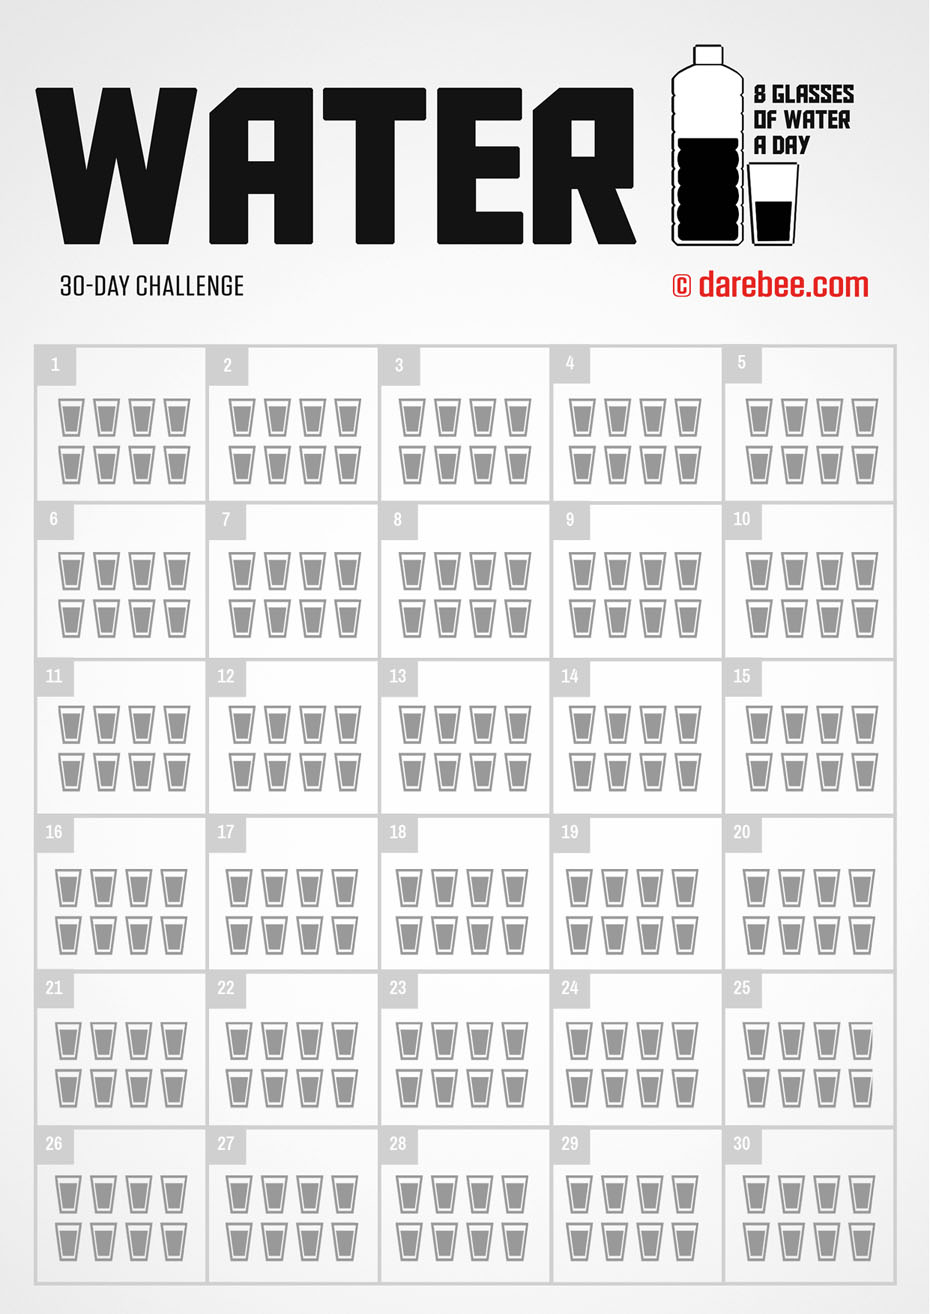 30-Day Water Challenge by DAREBEE